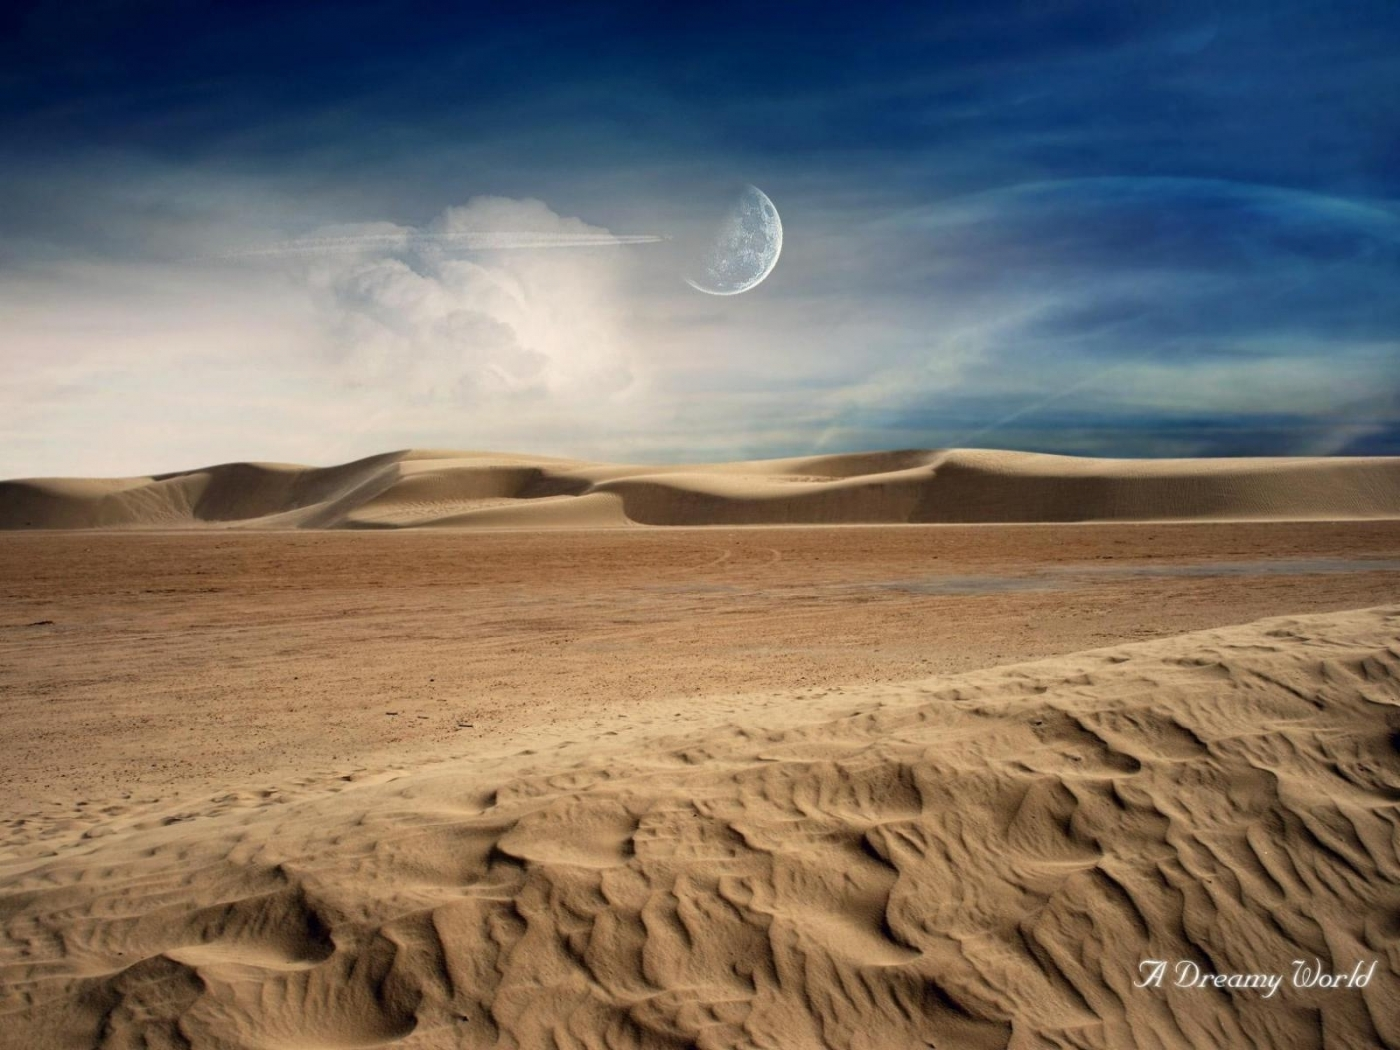 23671 download wallpaper Landscape, Clouds, Sand, Moon, Desert screensavers and pictures for free